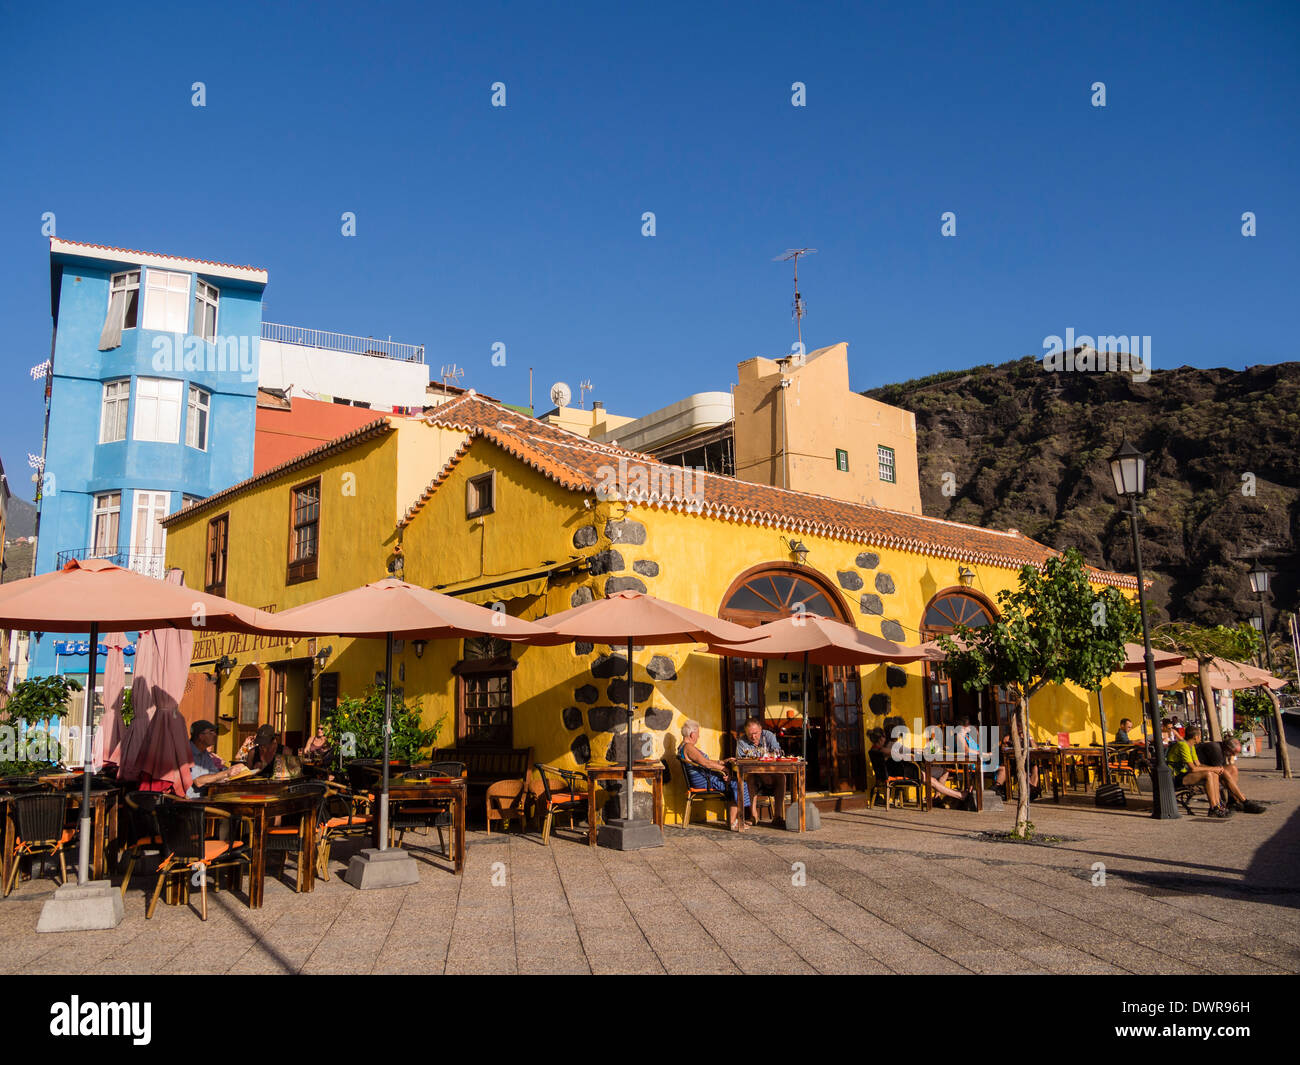 Tourists sit at the restaurant 'Taberna del Puerto' at the beach front of Puerto de Tazacorte on the Canary Island of La Palma. - Stock Image